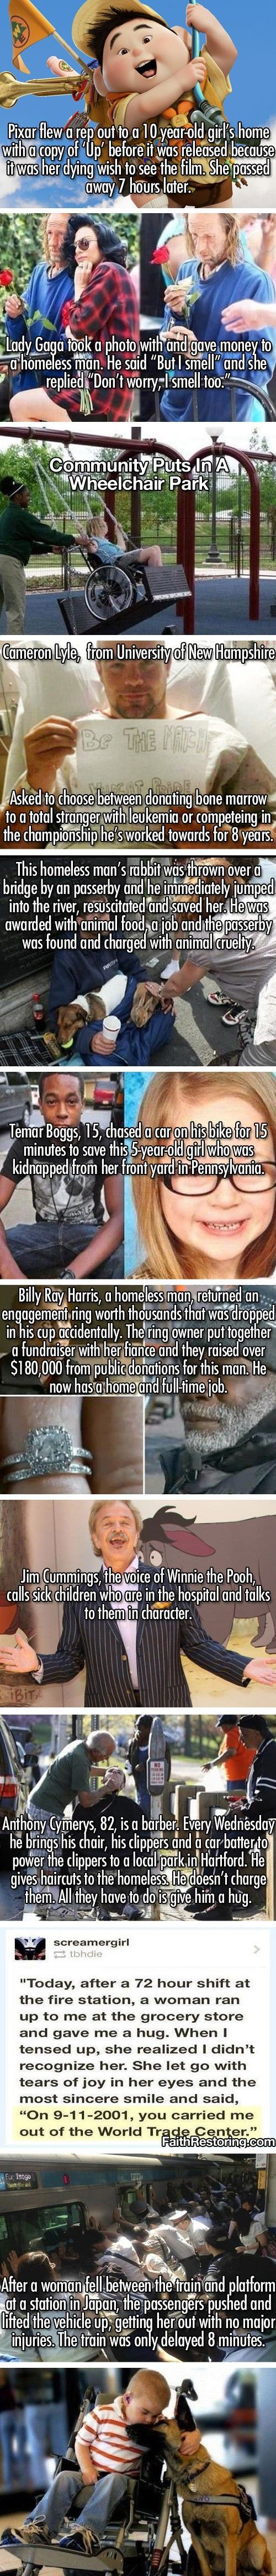 People will live up to the blessings or down to curses you speak about them.